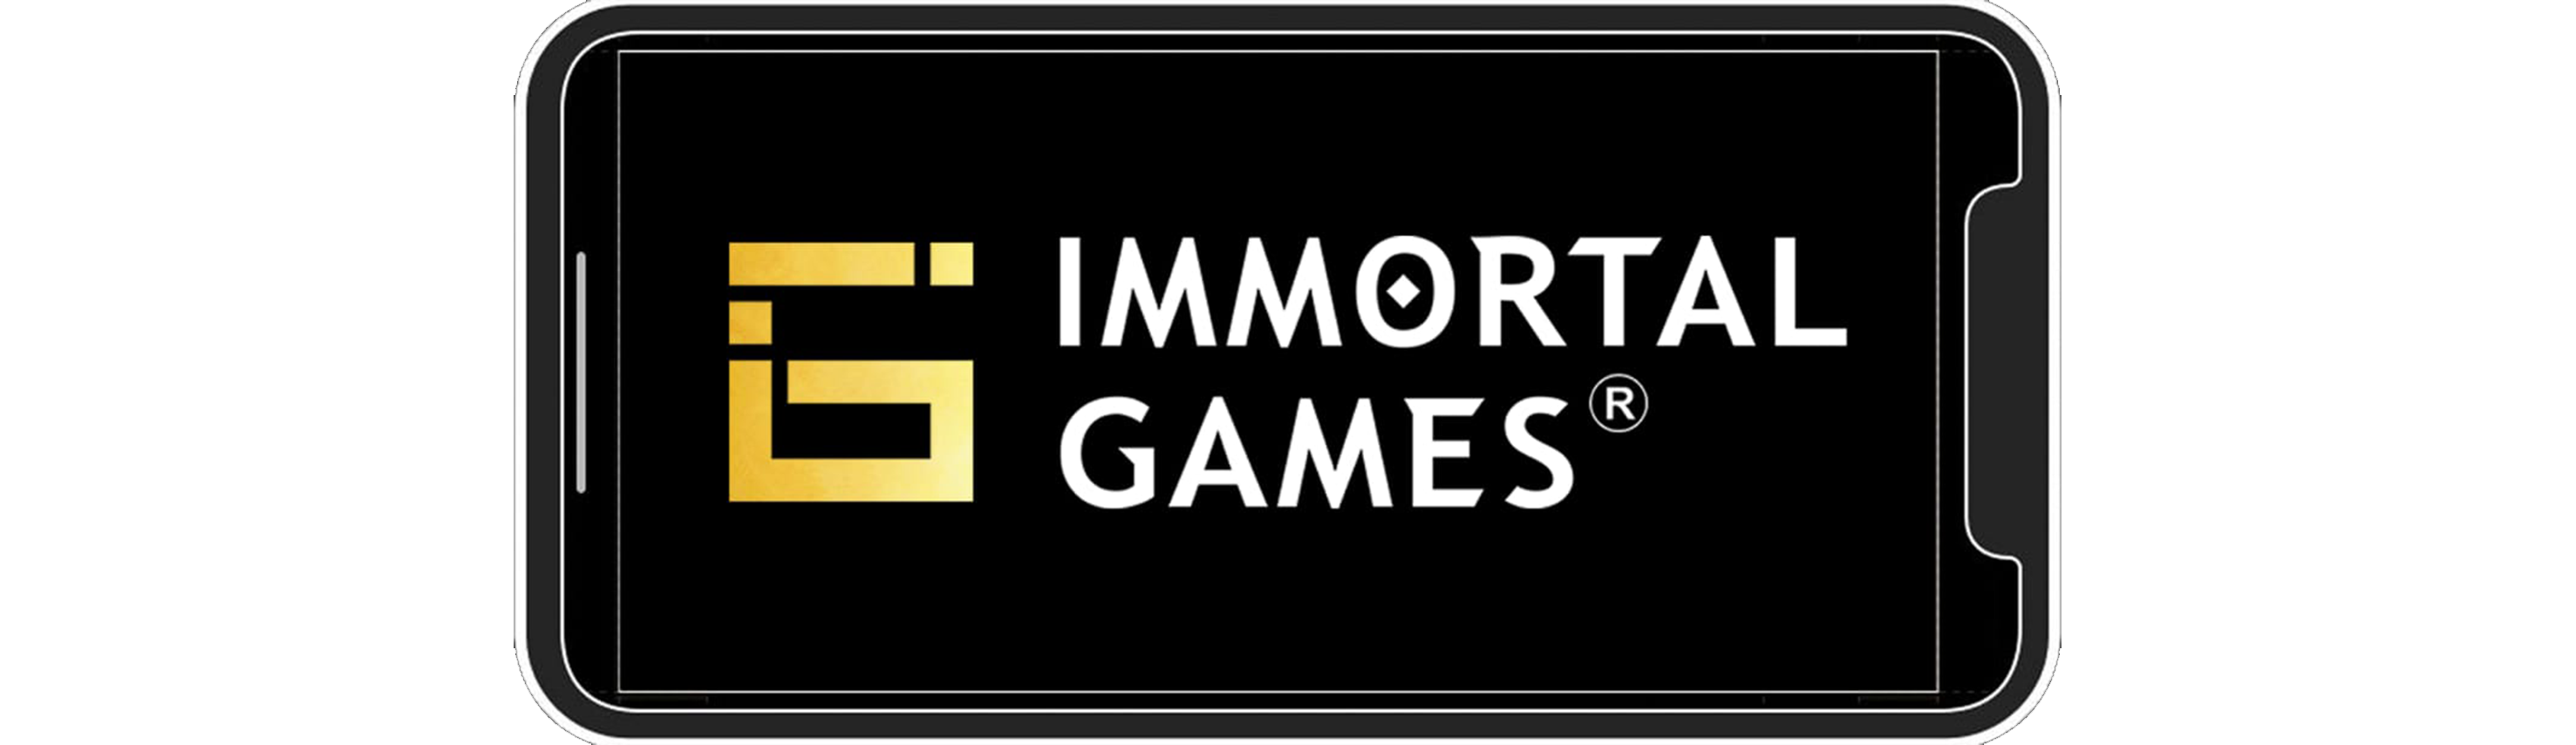 immortal games